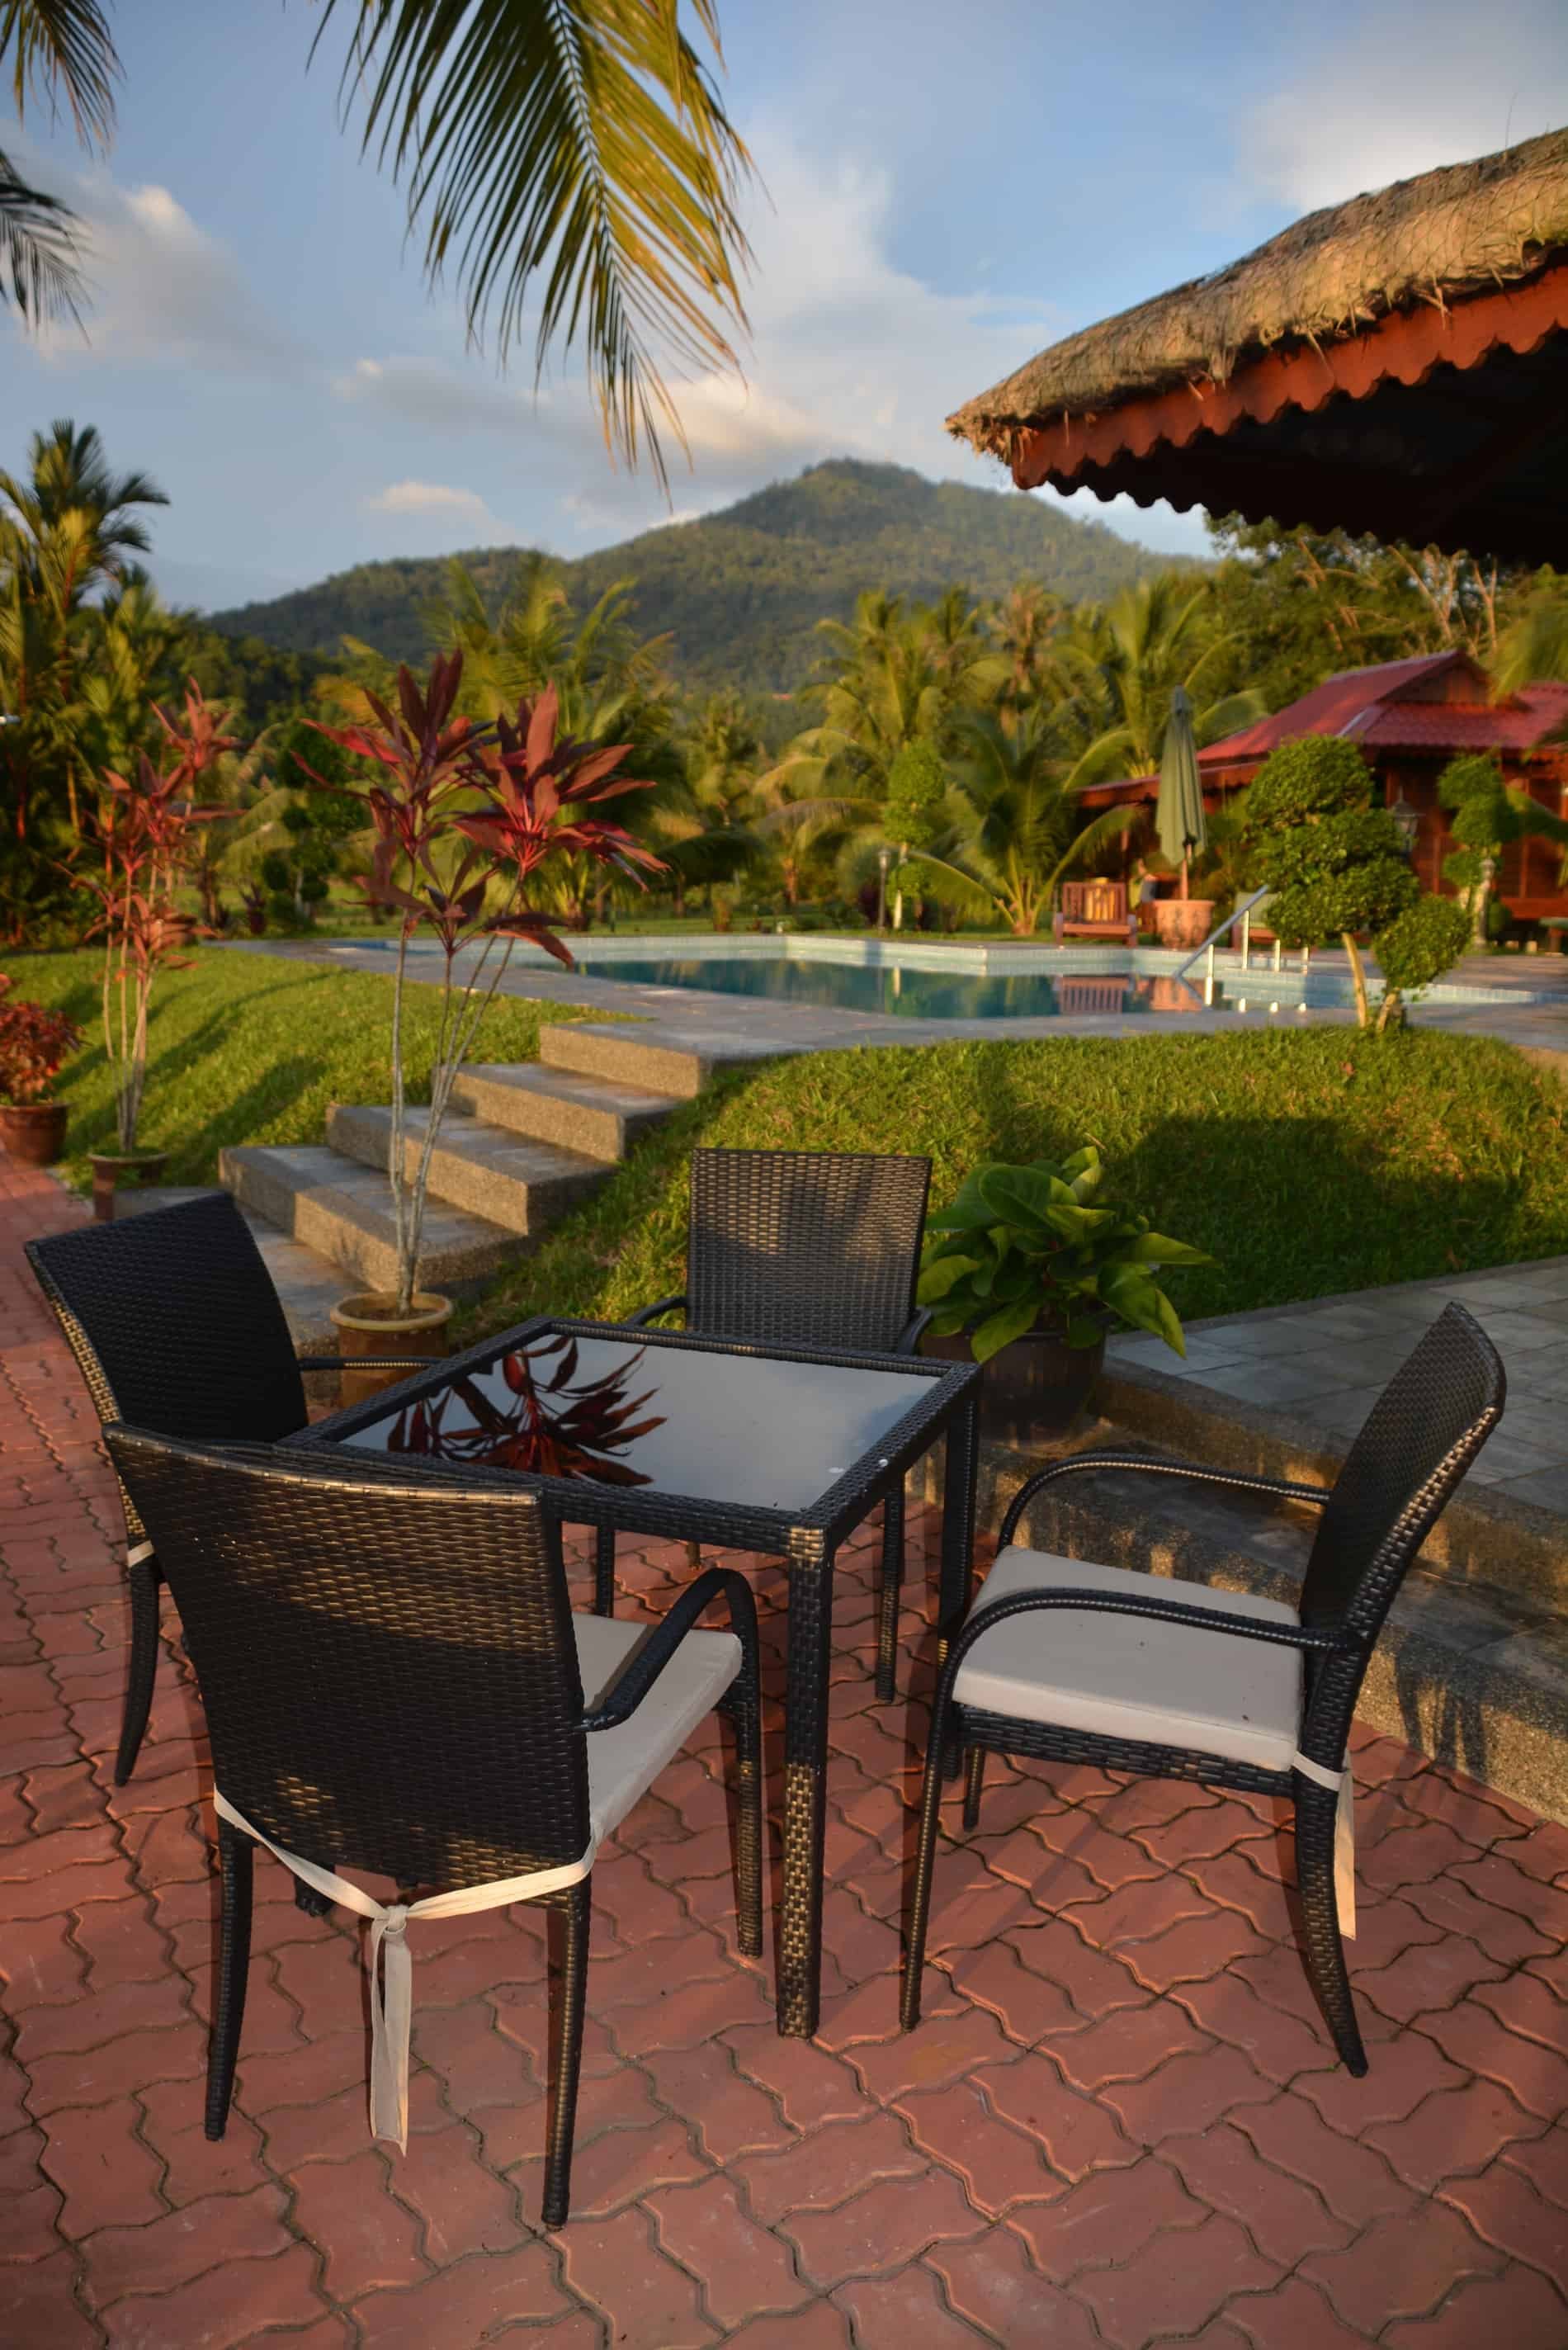 Sunset Valley Holiday Houses - outside dining area